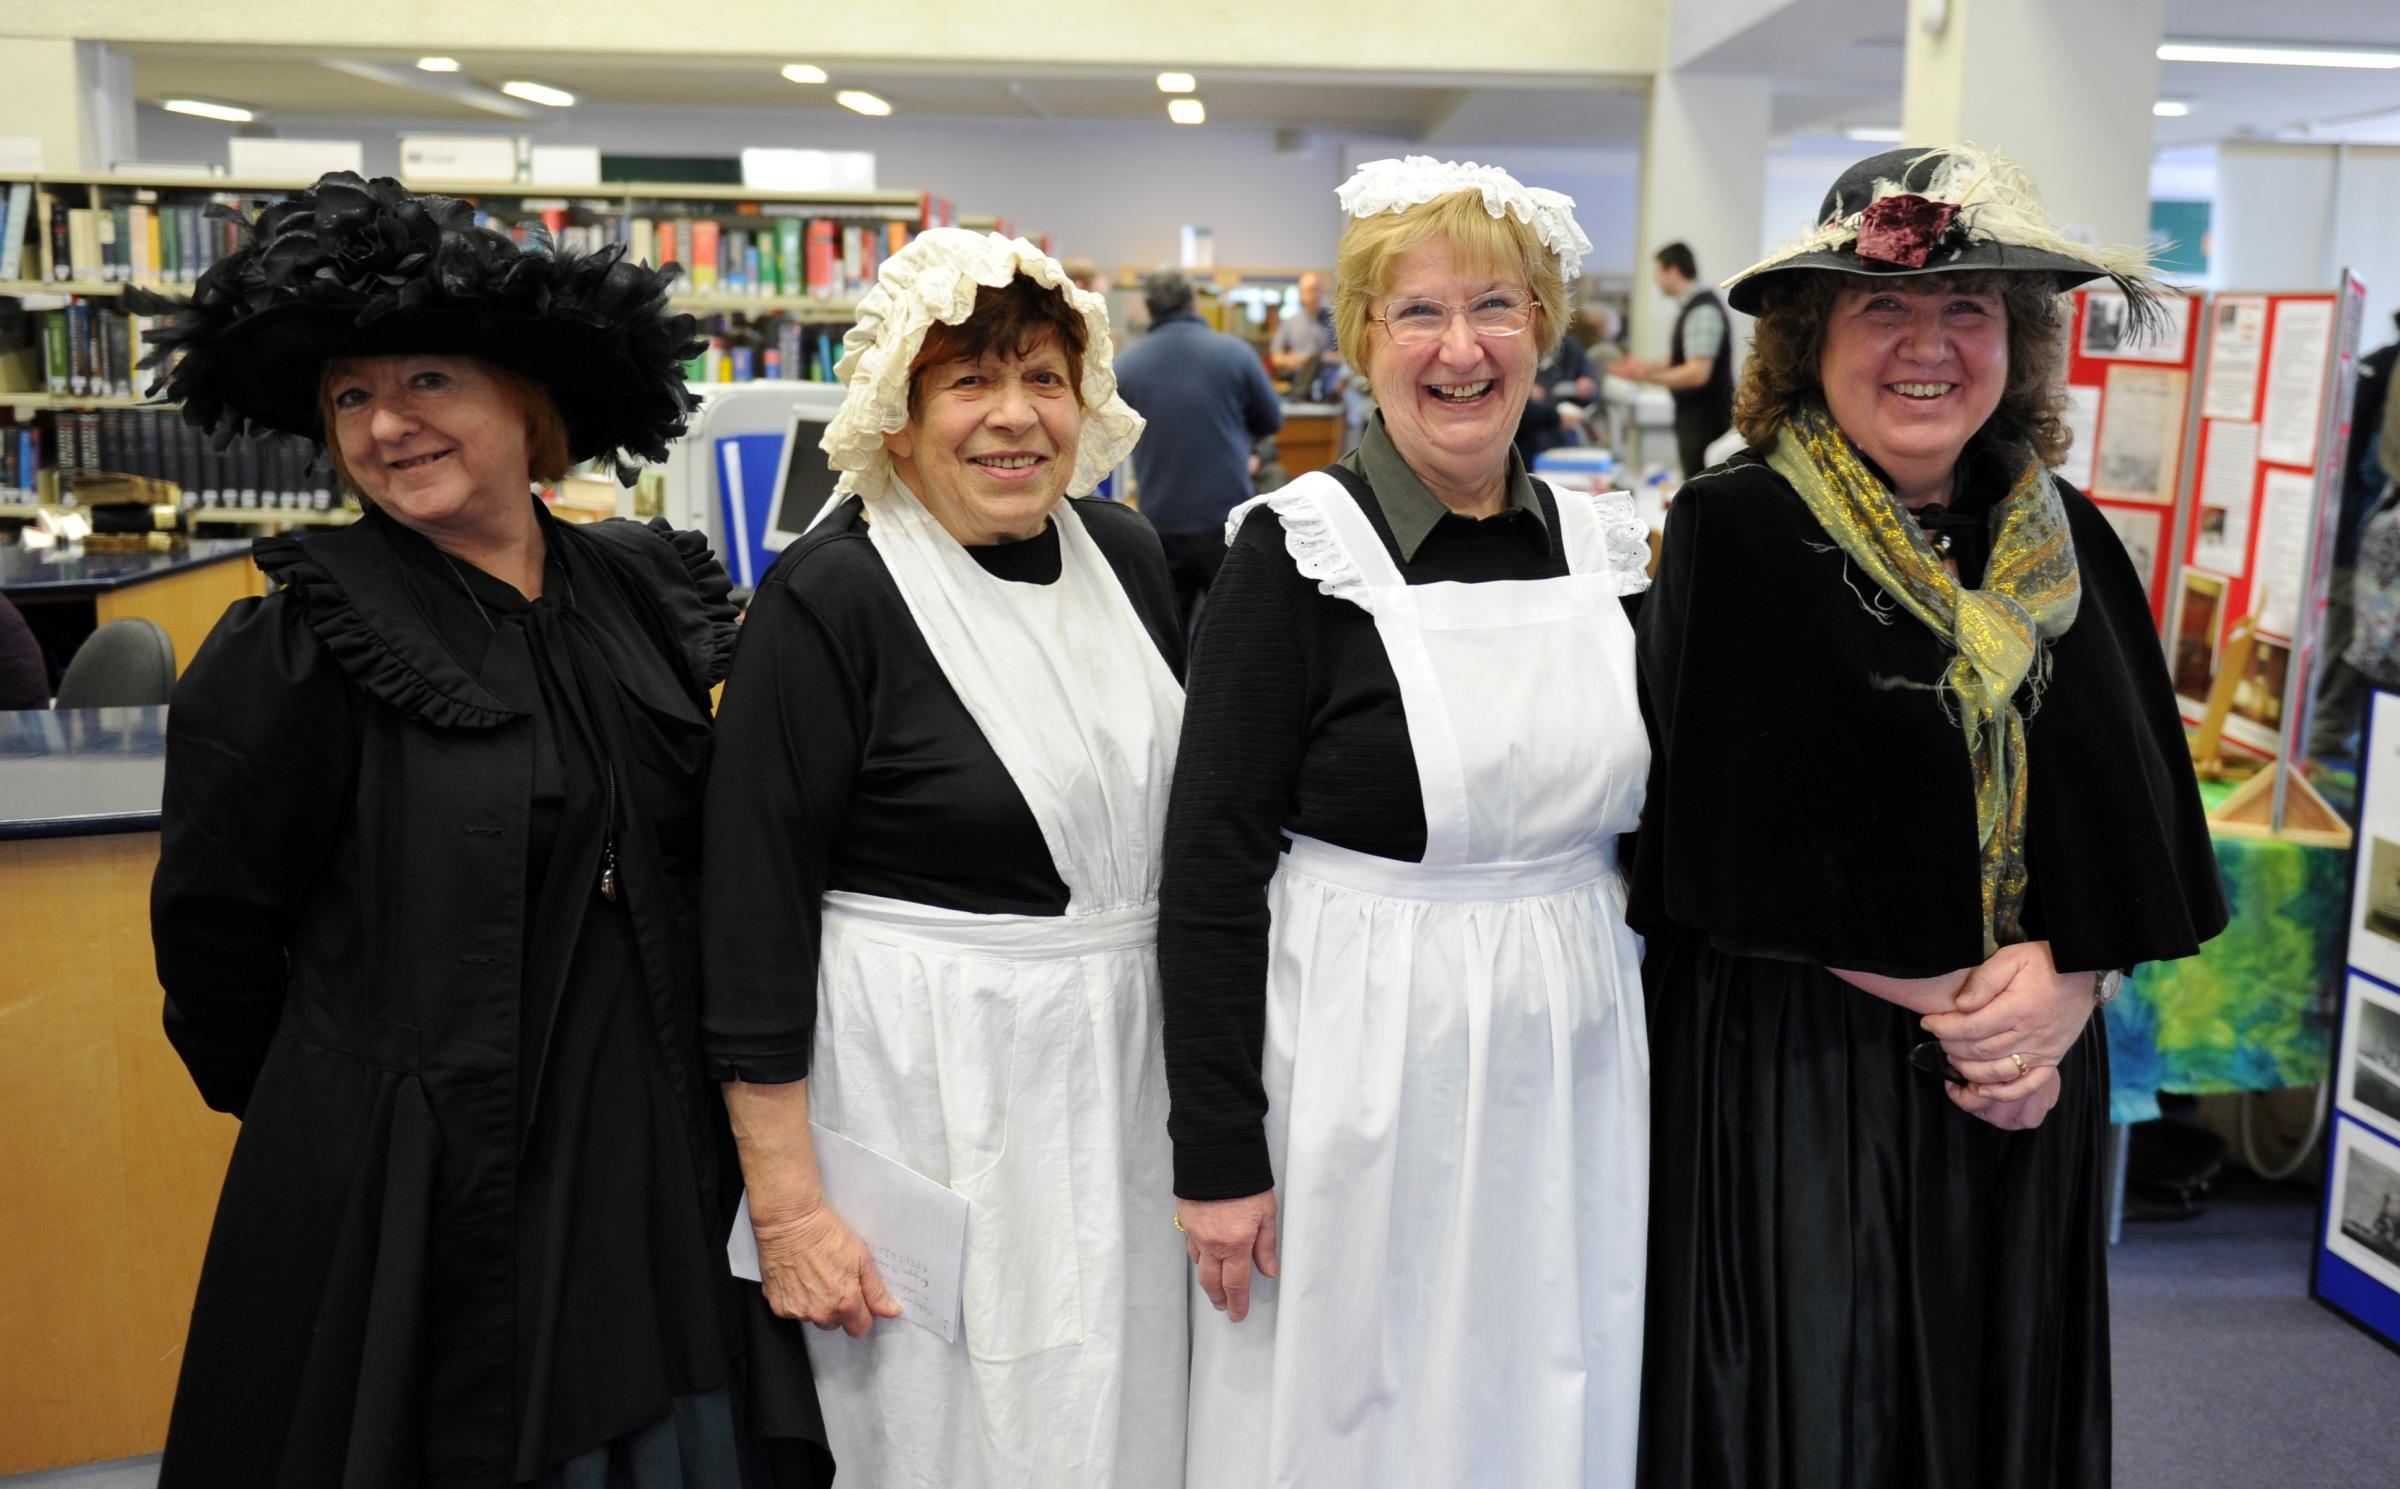 History day gives lesson on Newport's past